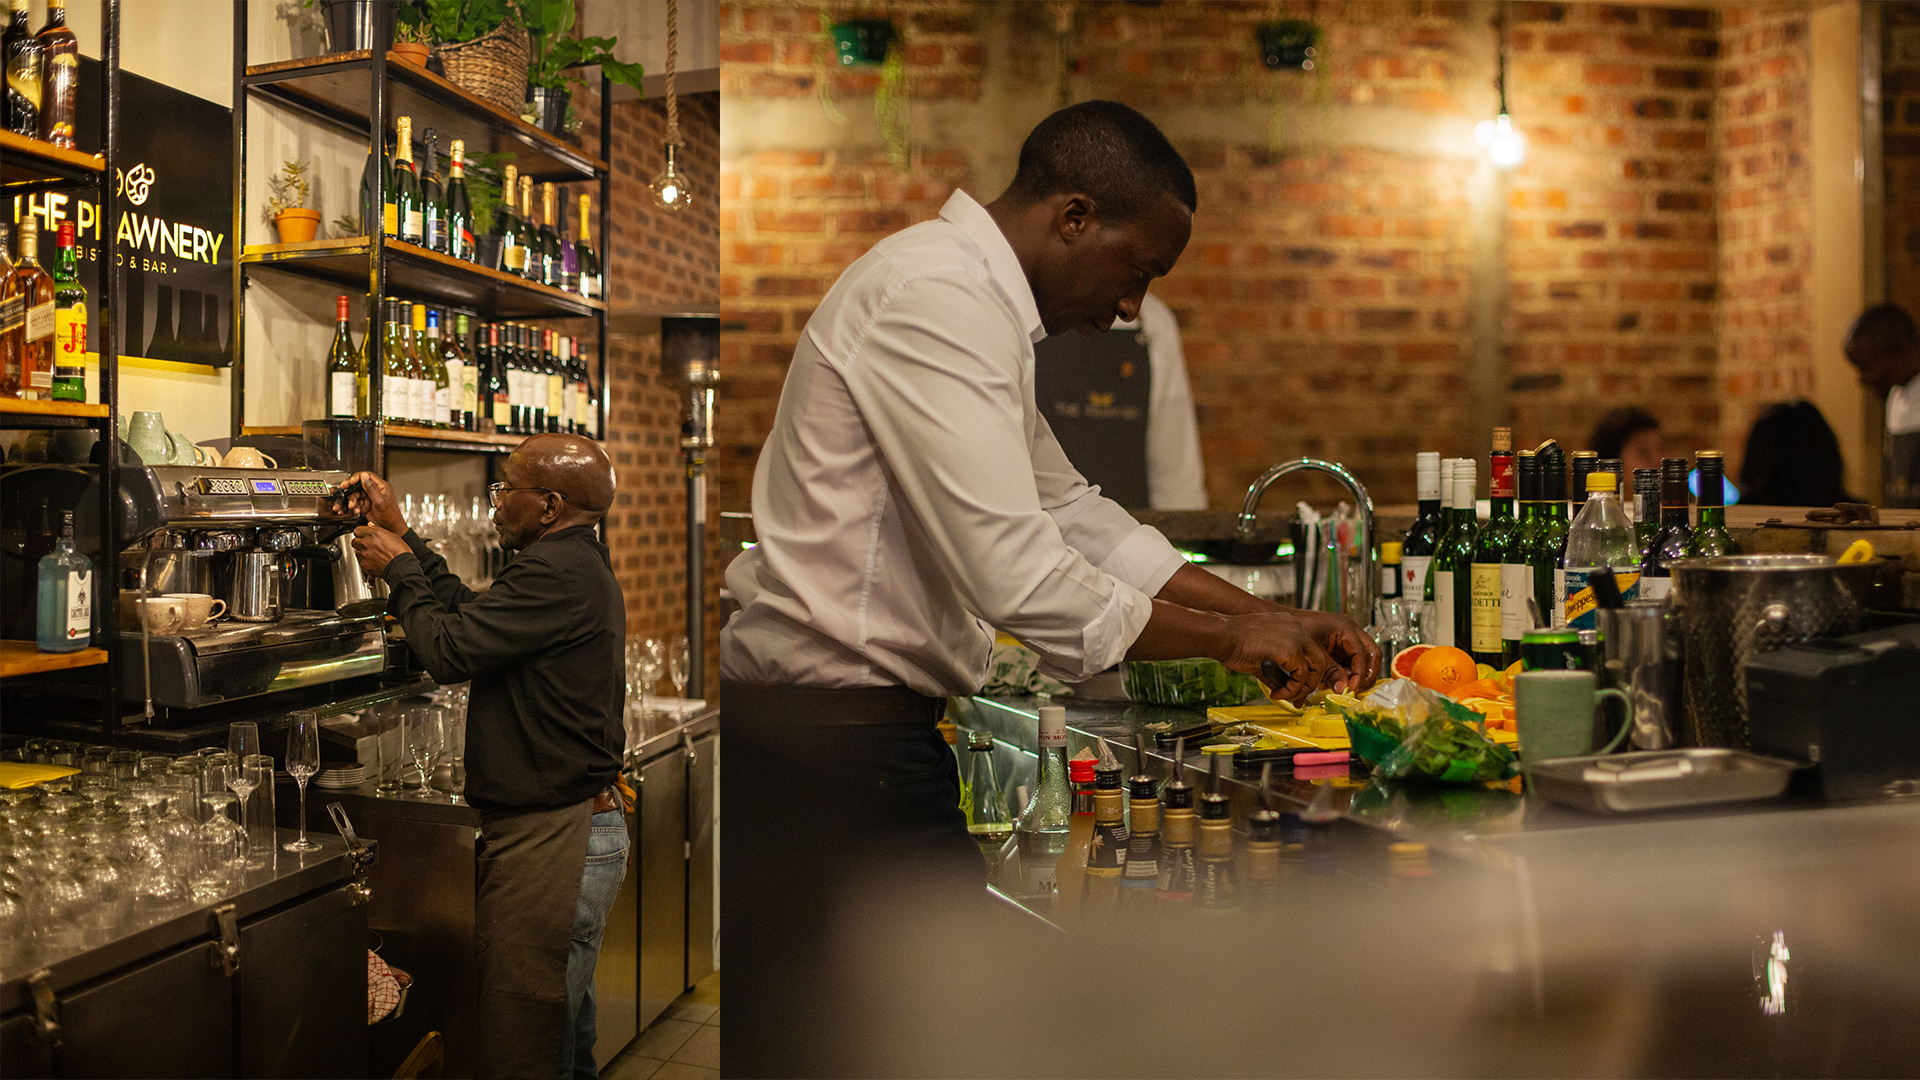 Barmen prepare drinks at The Prawnery restaurant and bistro.